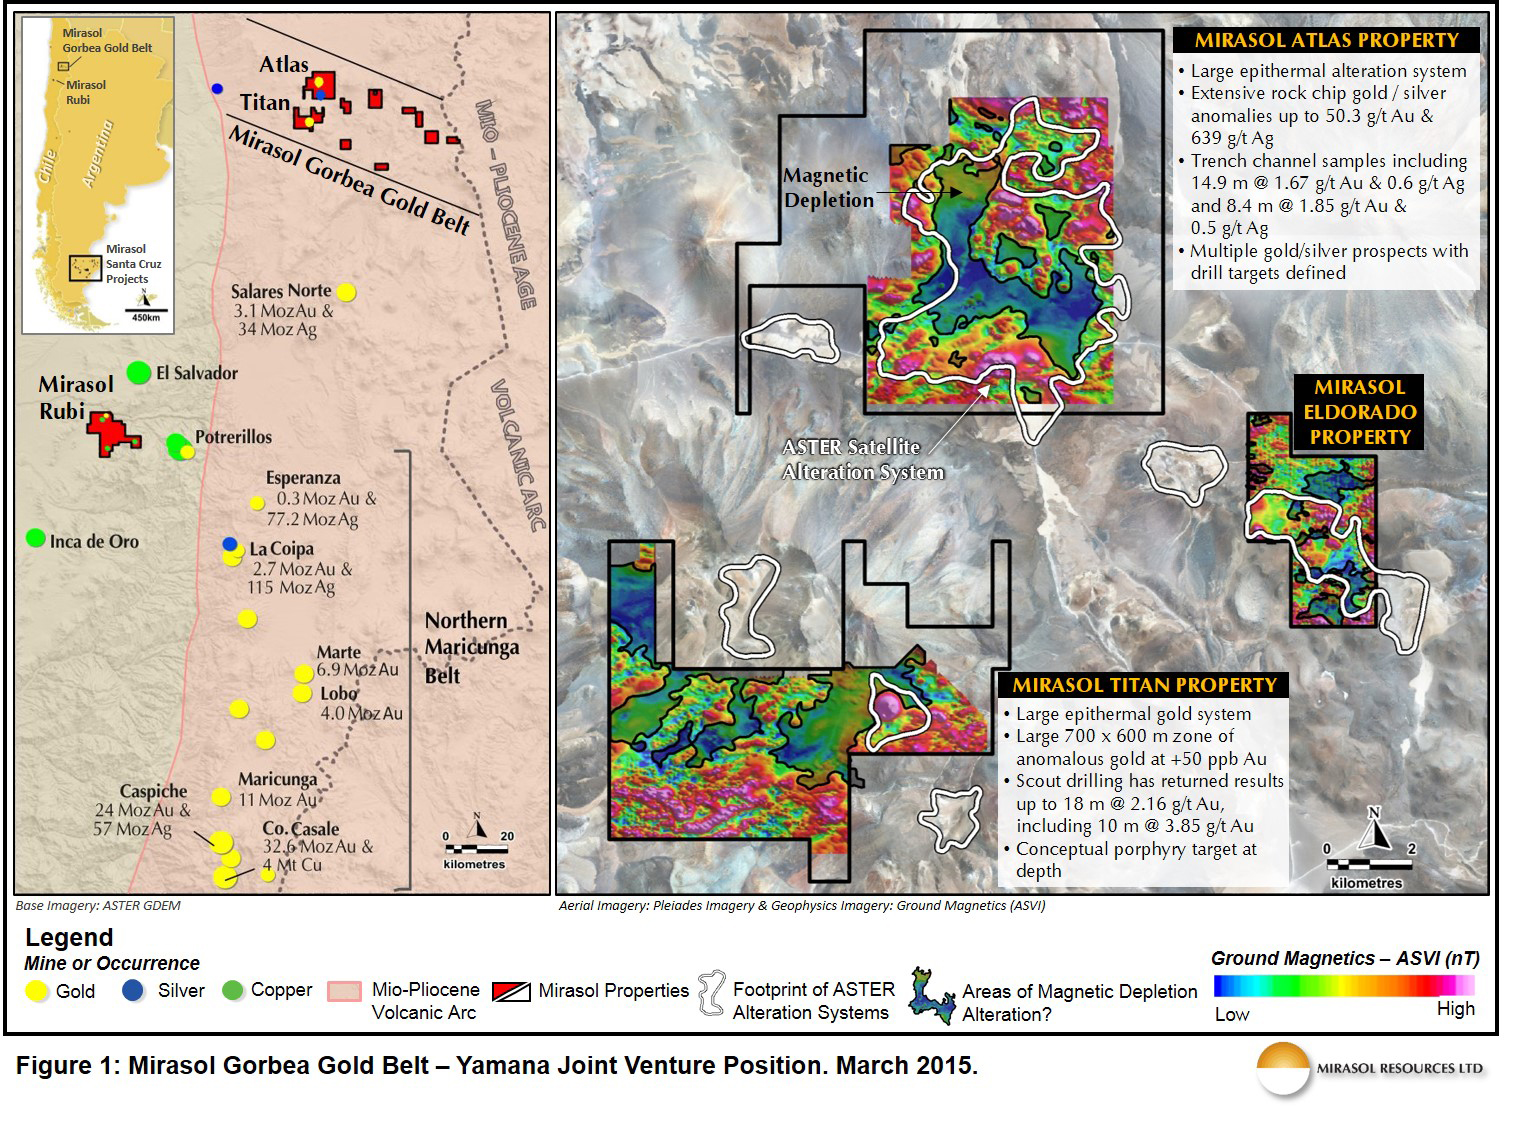 Figure 1: Mirasol Gorbea Gold Belt - Yamana Joint Venture Position. March 2015